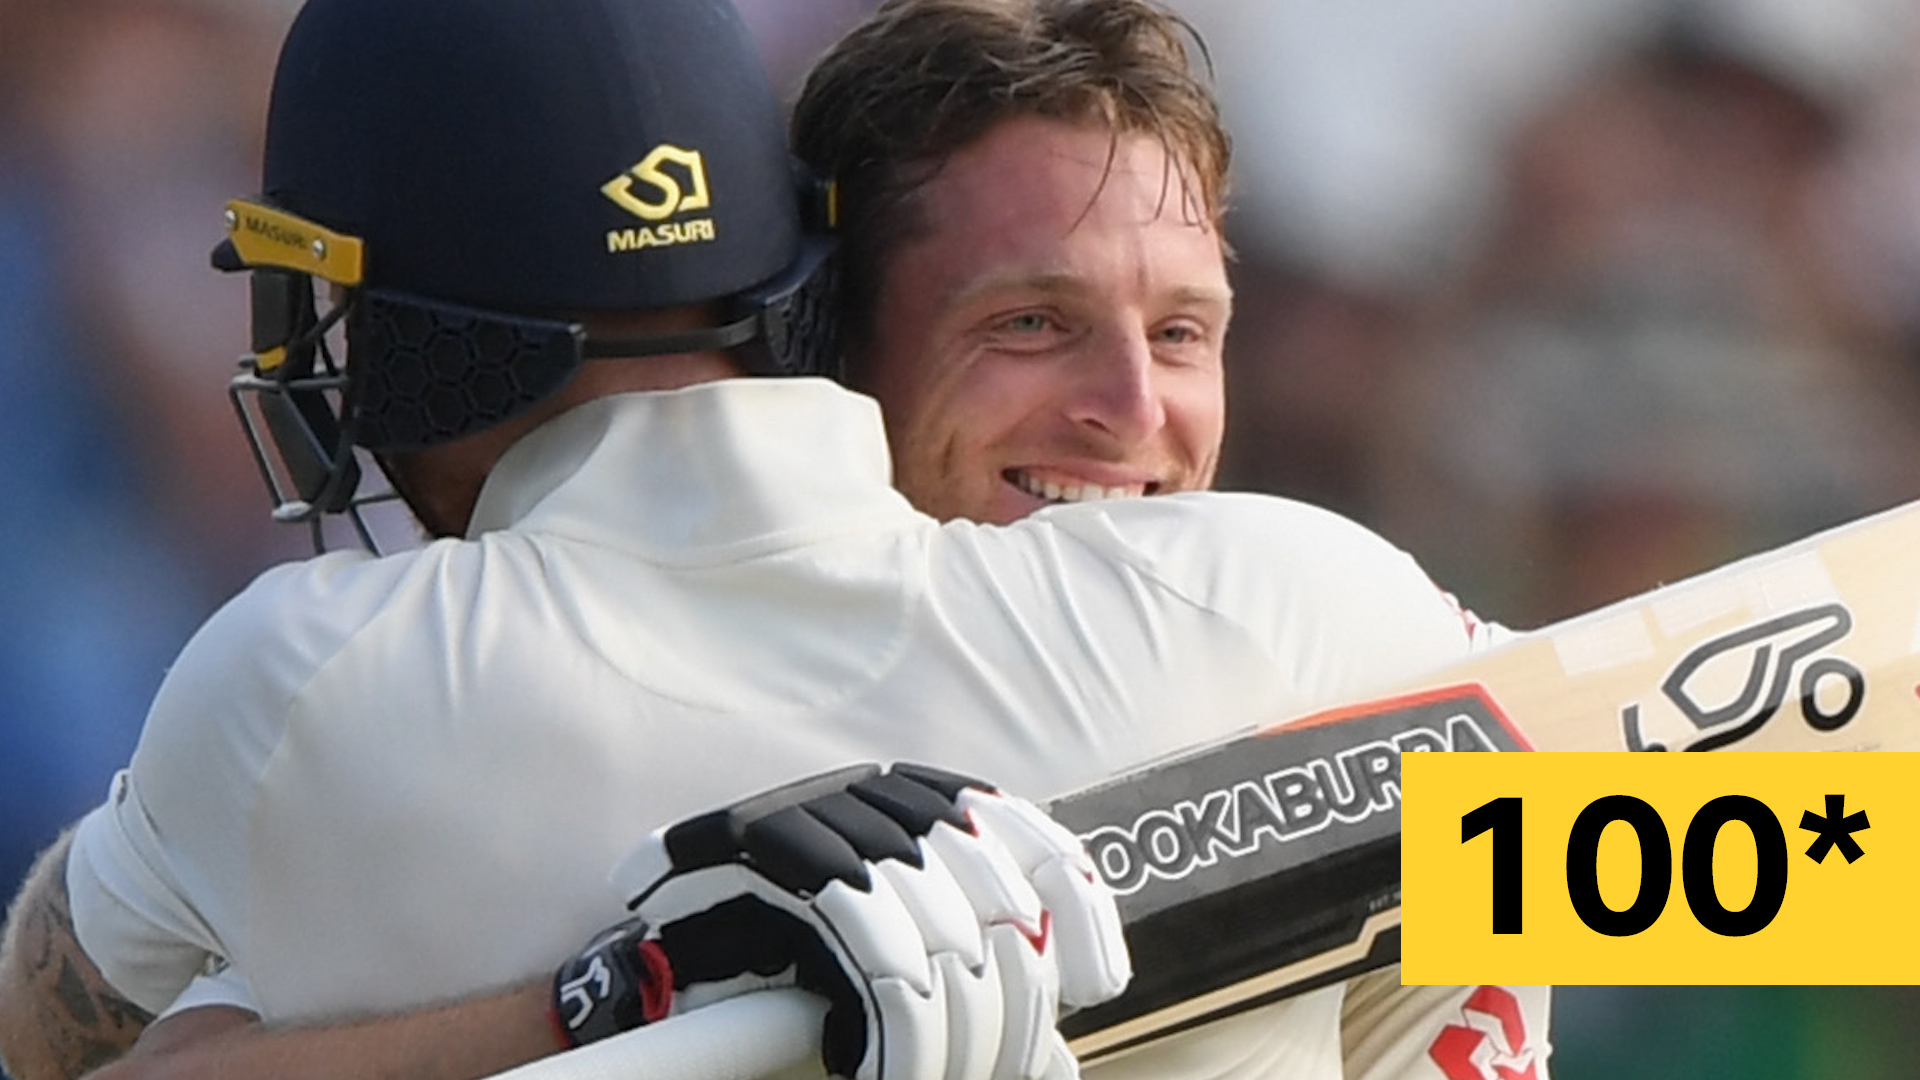 England v India: Jos Buttler scores 'brilliant' maiden Test century